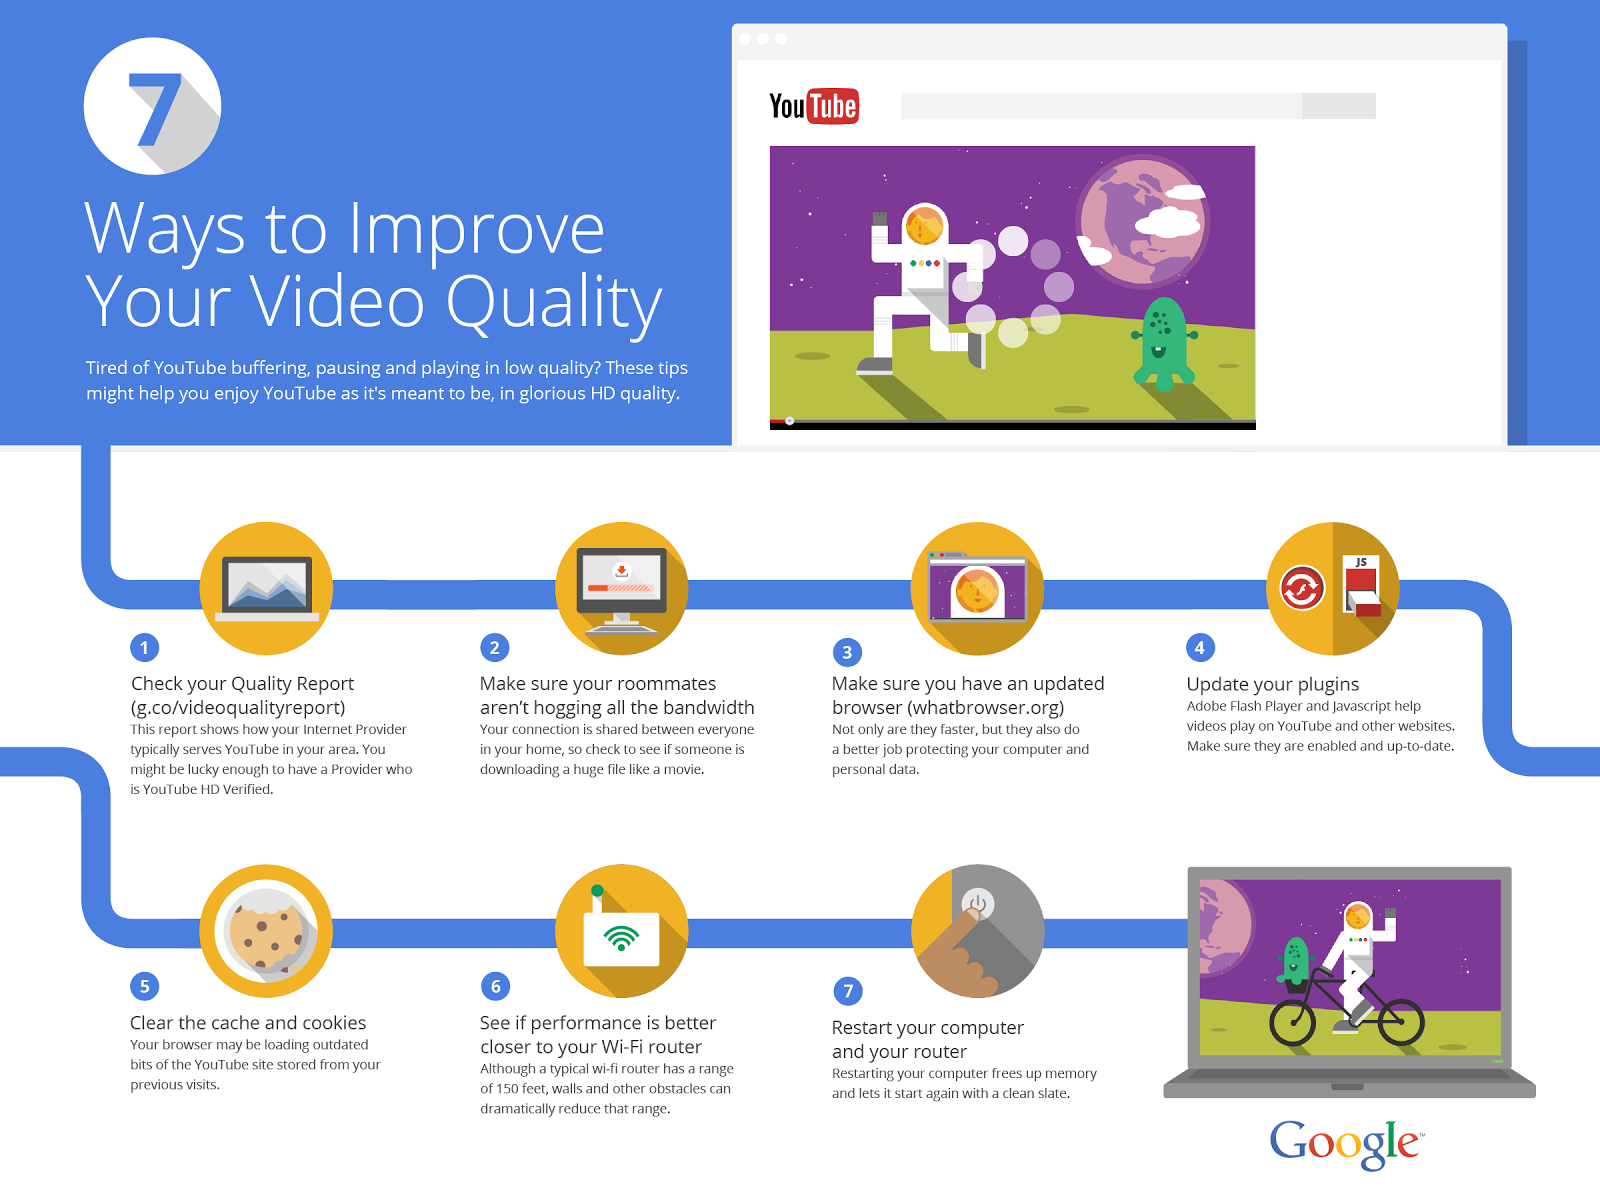 Don T Blame Us For Slow Youtube Videos Says Google Say Google Youtube Marketing Video Marketing